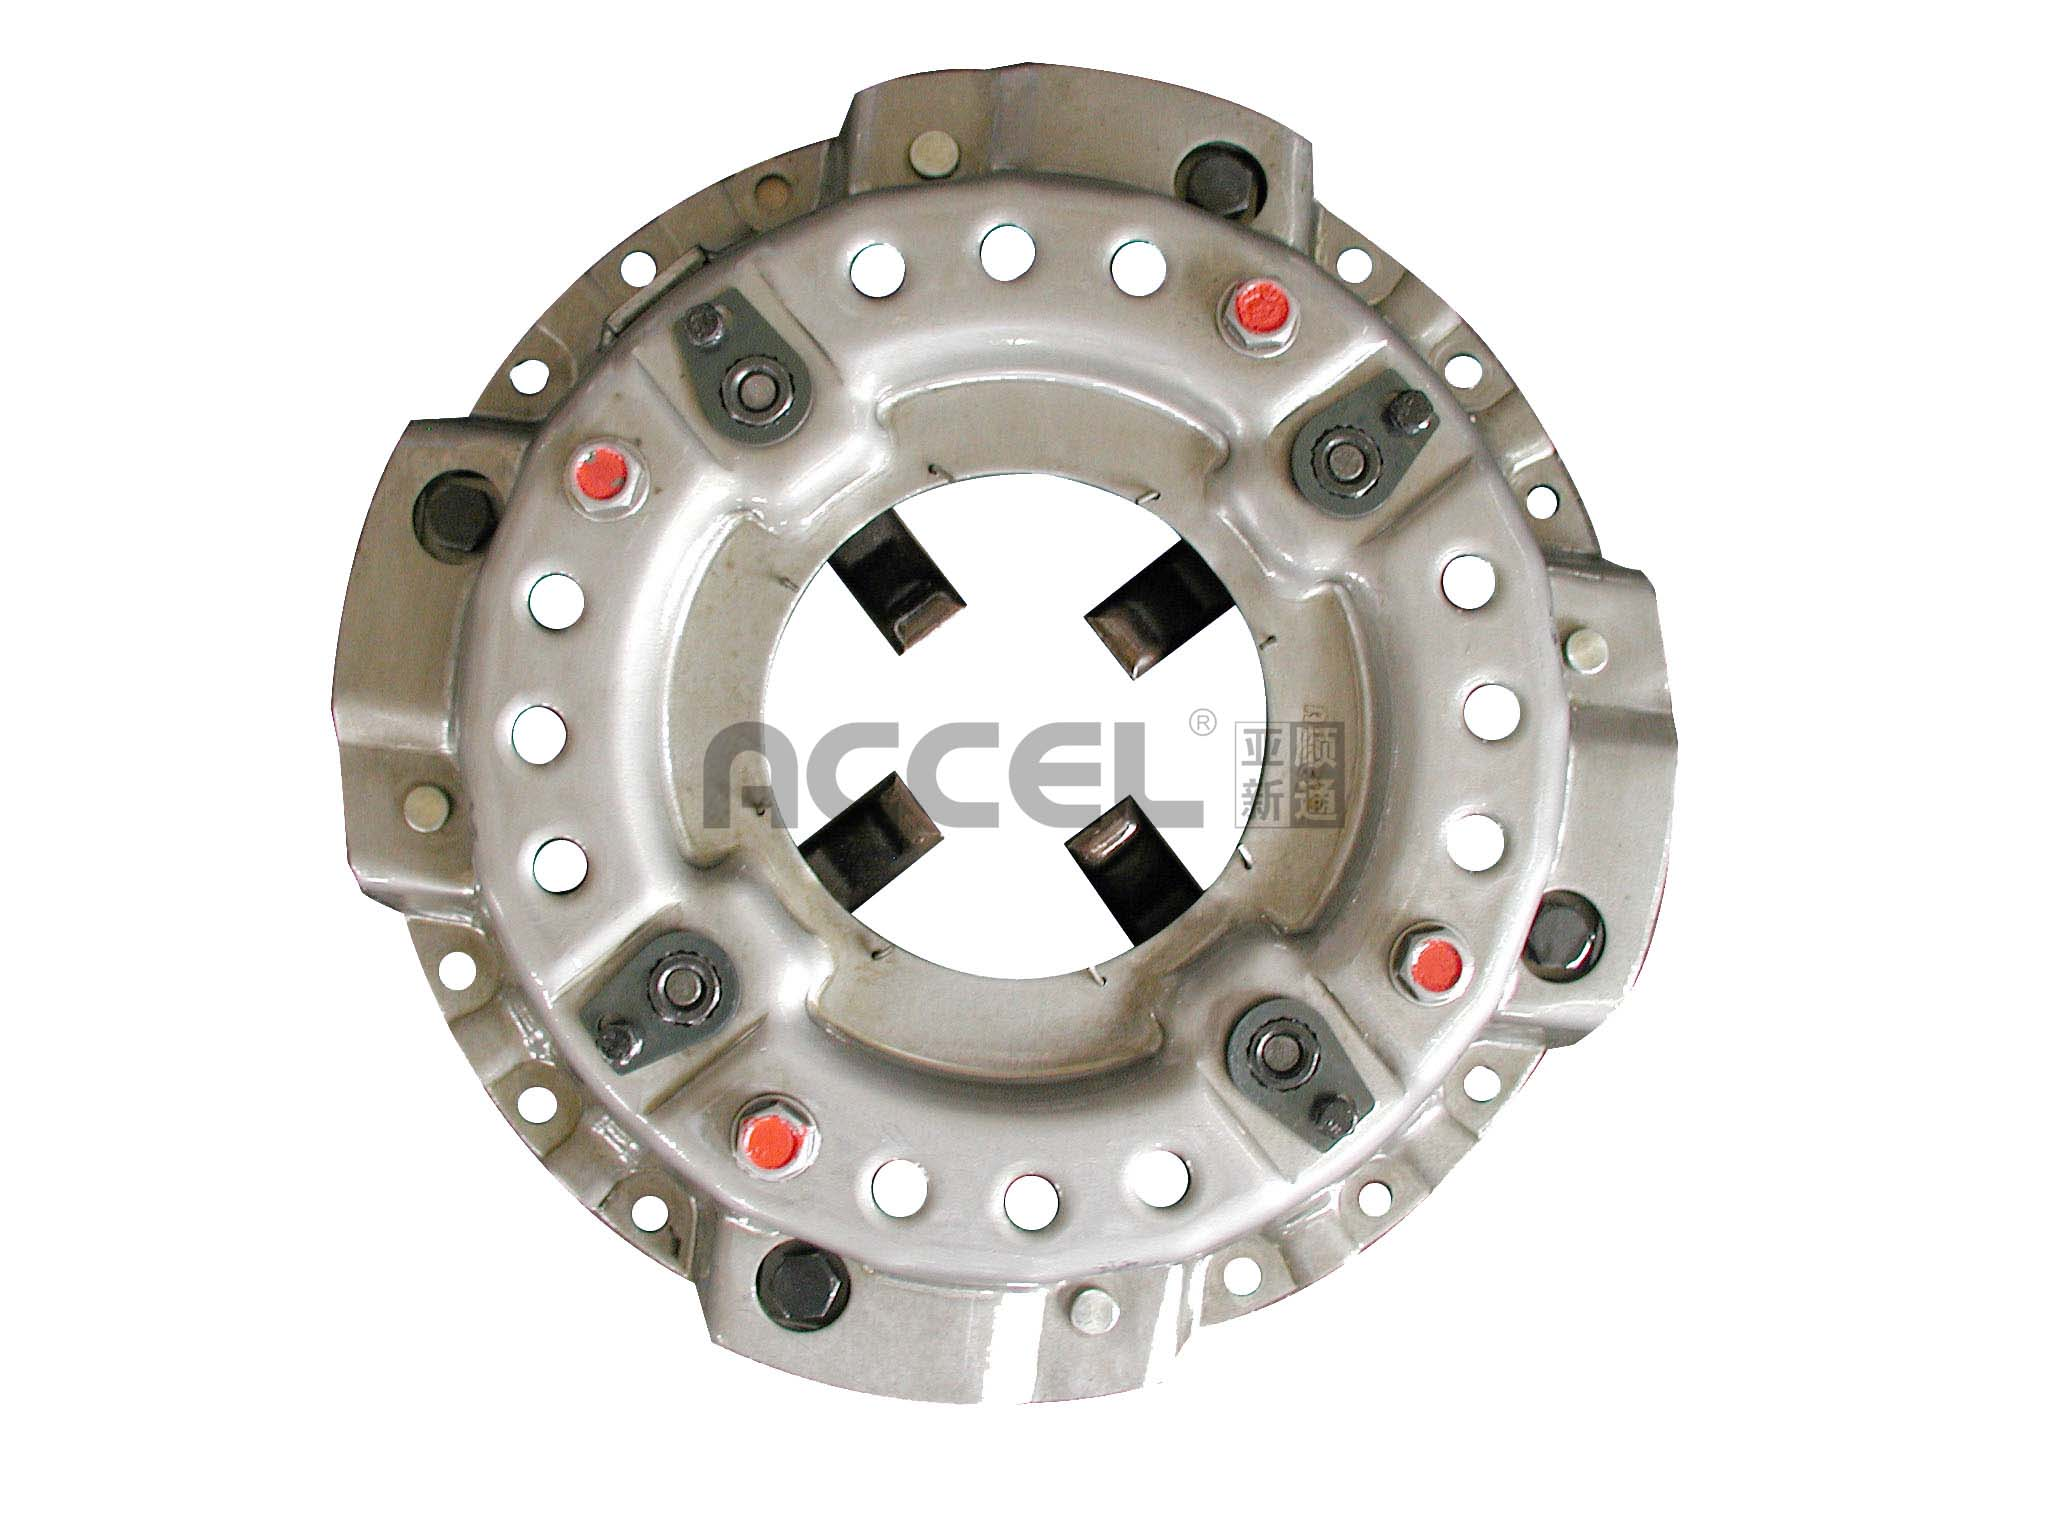 Clutch Cover/OE:31210-2050/300*190*350/CHN-007/HINO/LY136/HNC518